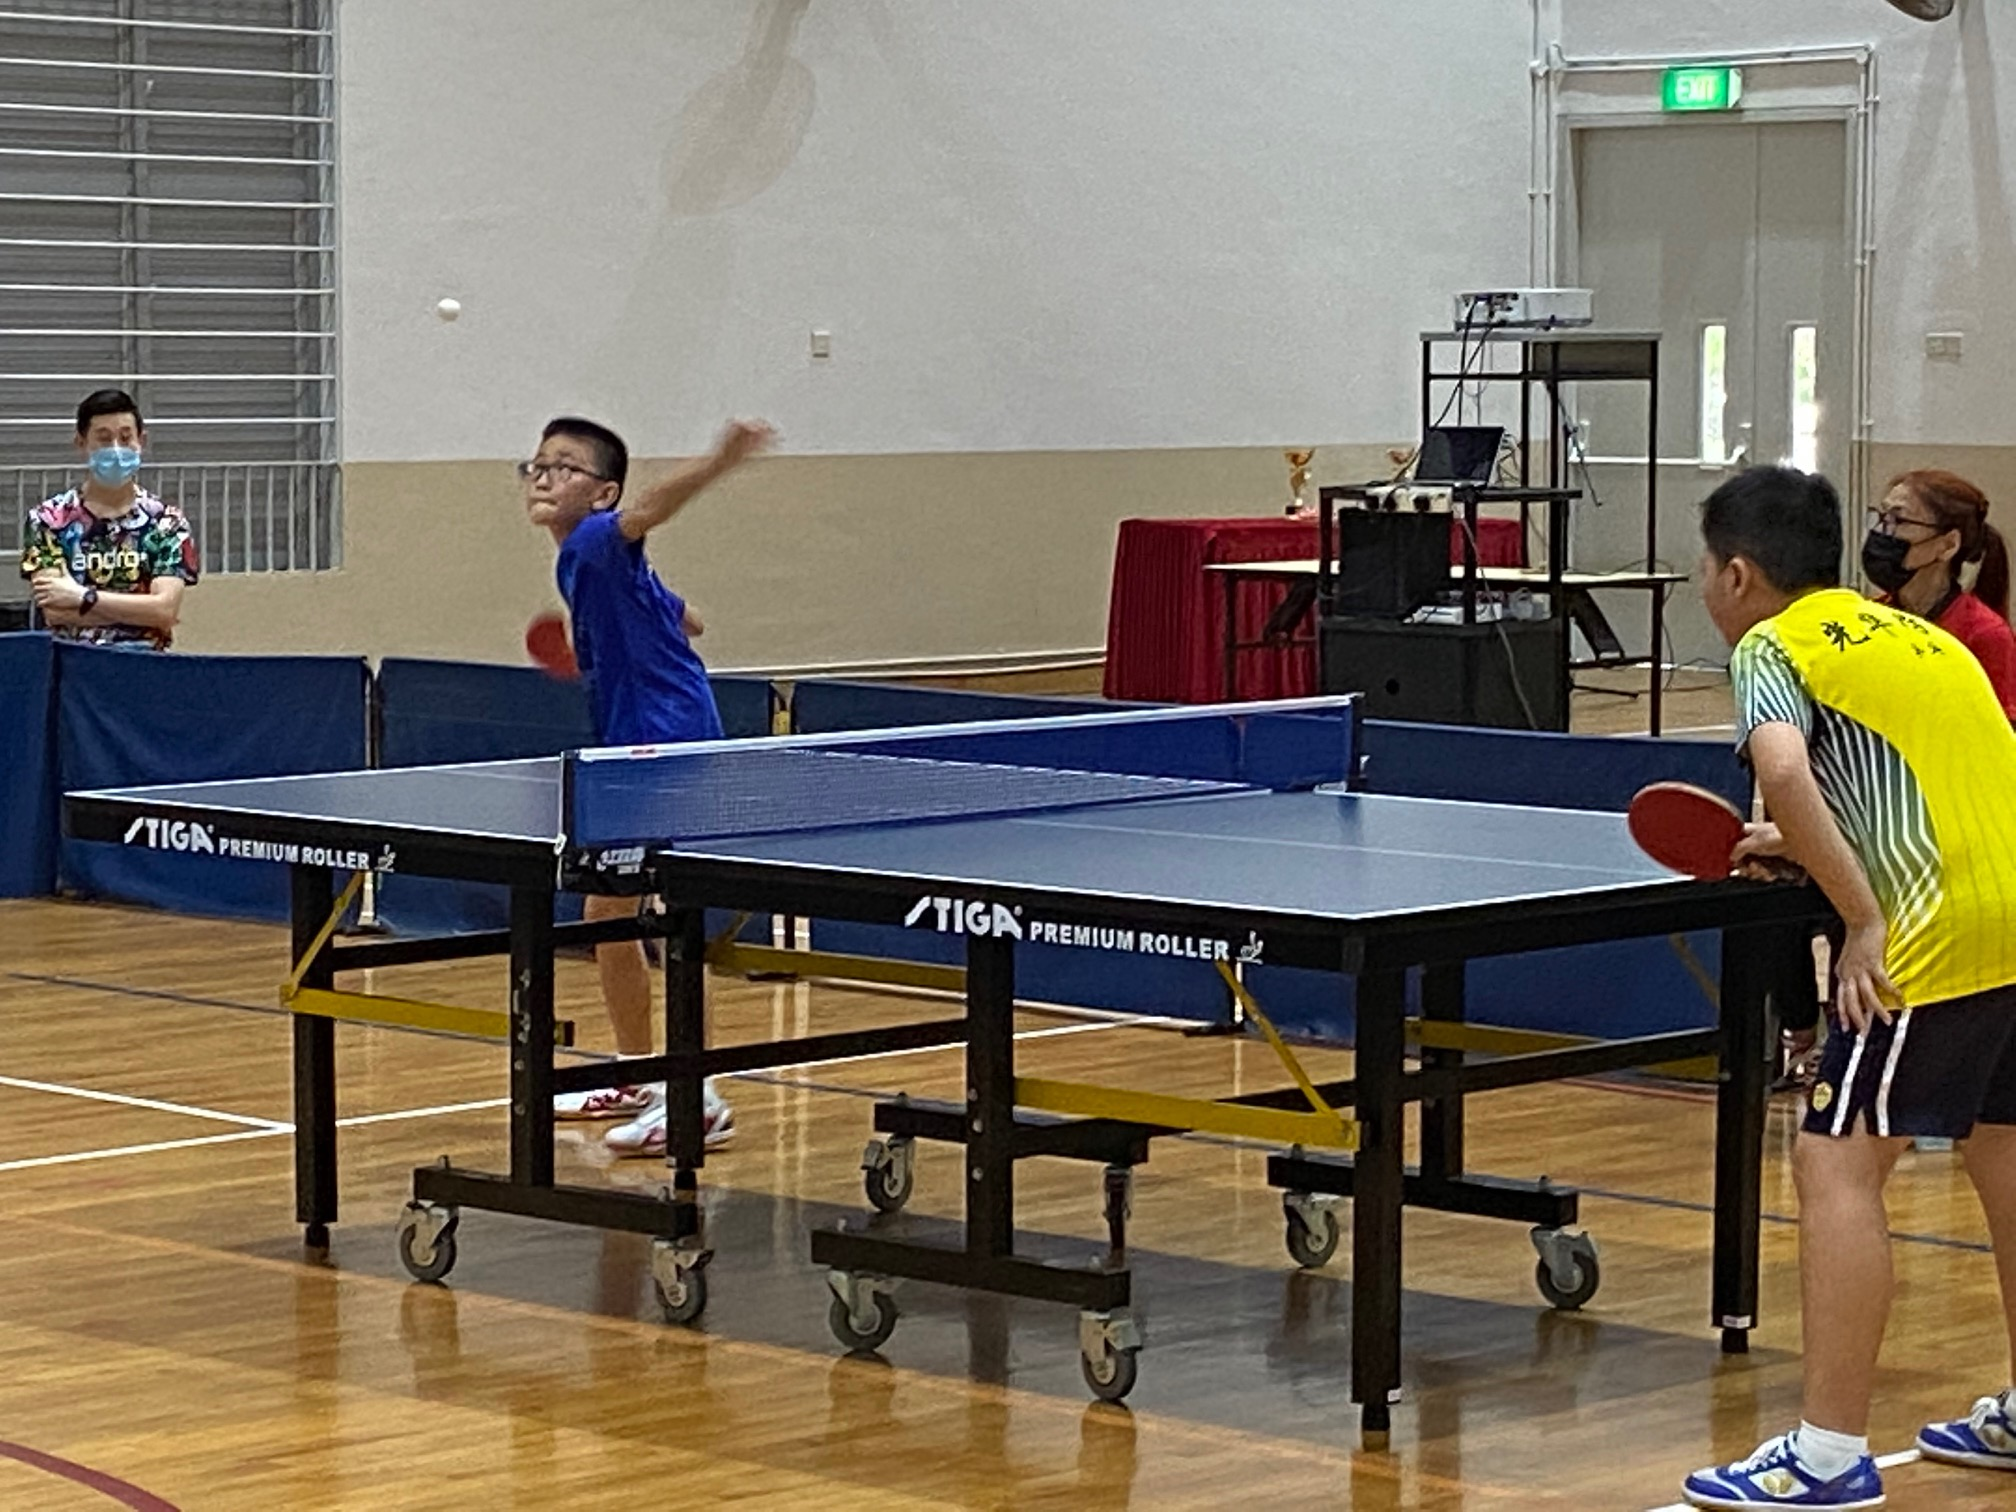 NSG East Zone Snr Div boys table tennis final - second singles